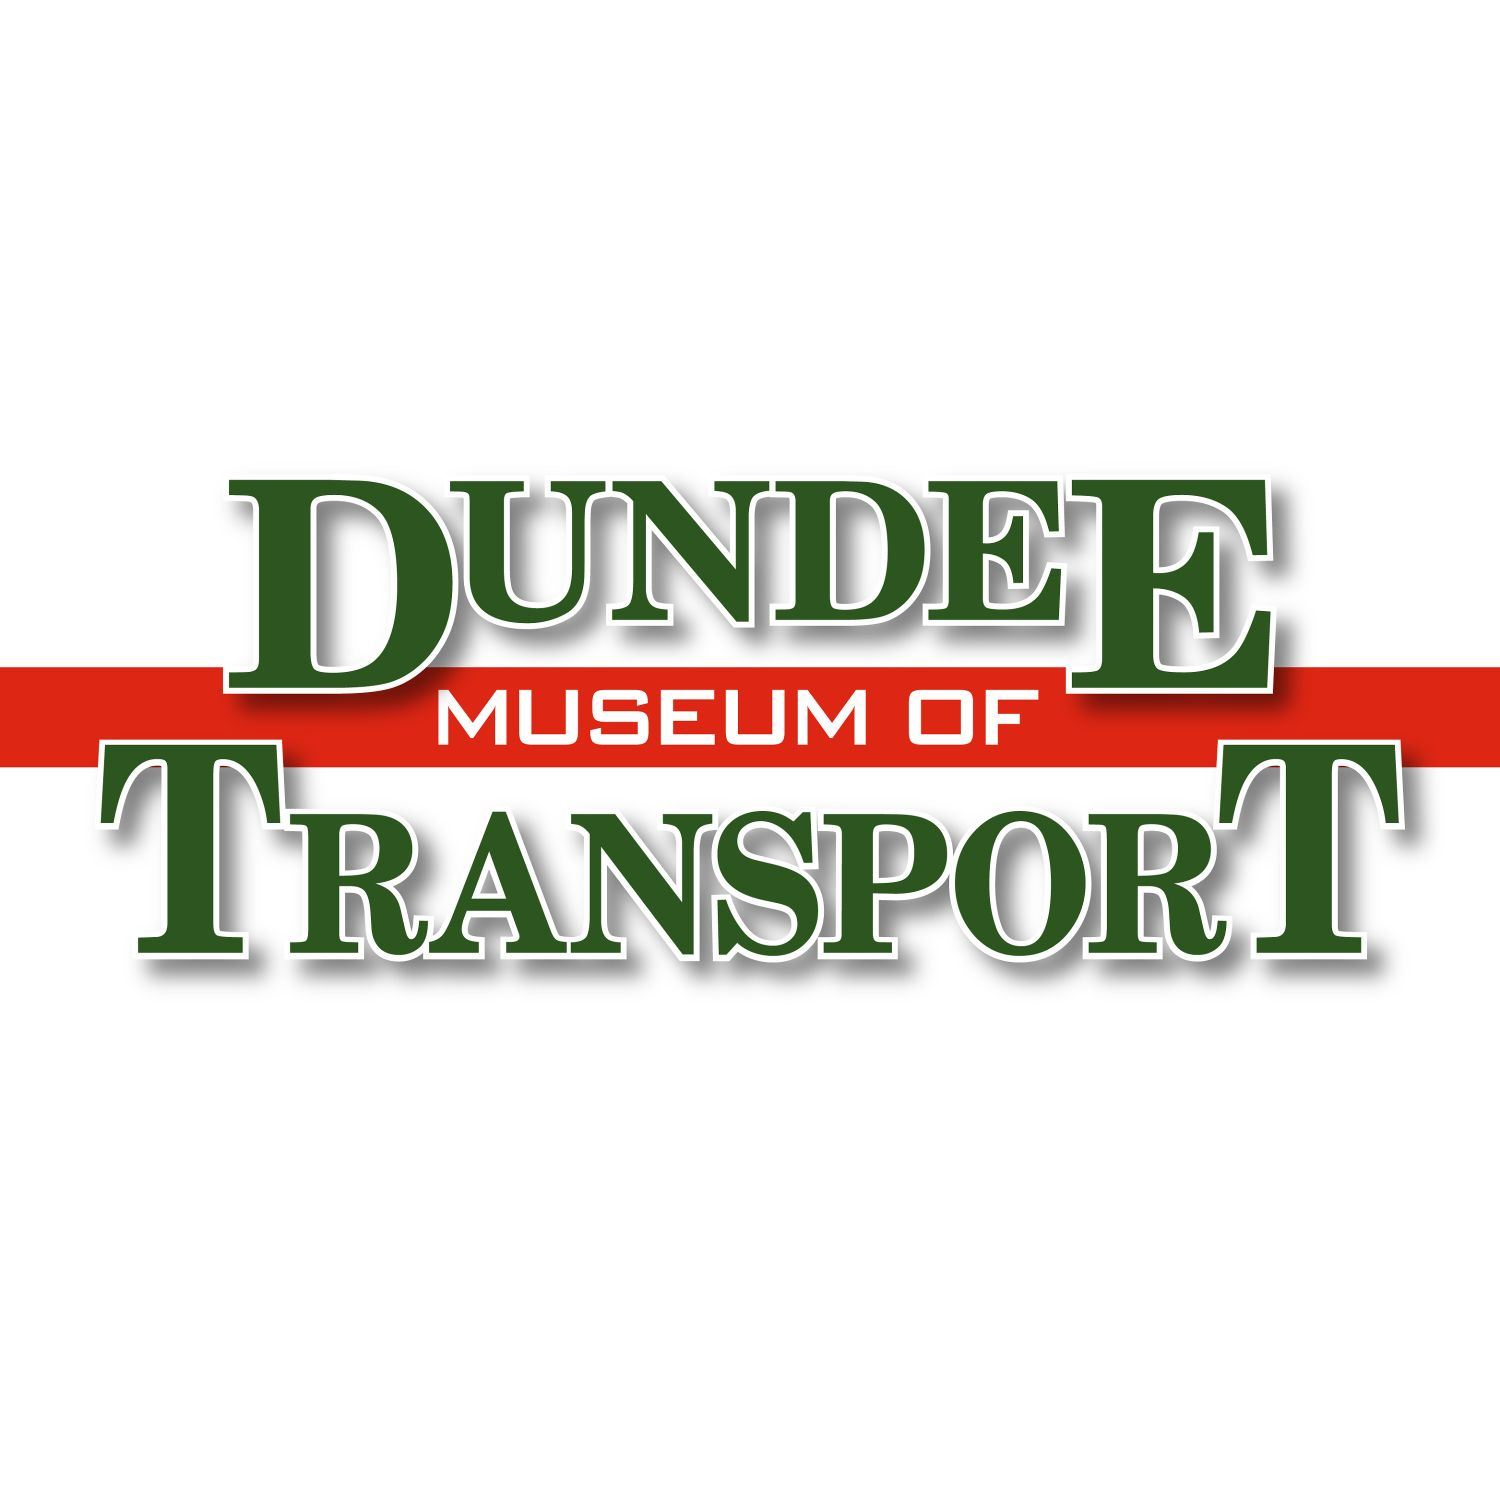 Dundee Museum Of Transport >> Find Out More About What Is Inside Dundee Museum Of